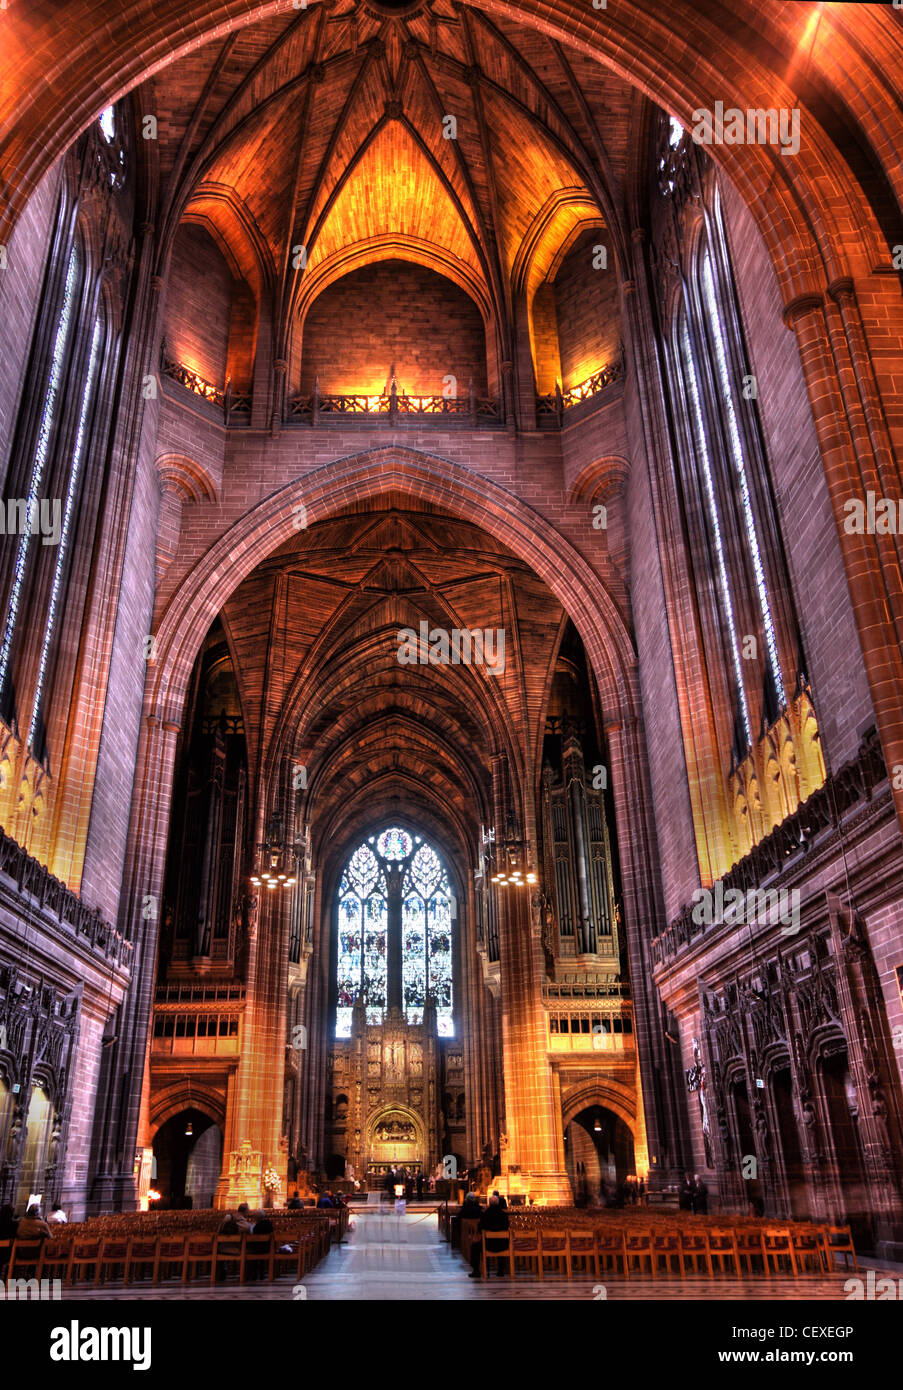 Liverpool Anglican Cathedral interior looking west, North West England, UK  L1 7BY - Stock Image